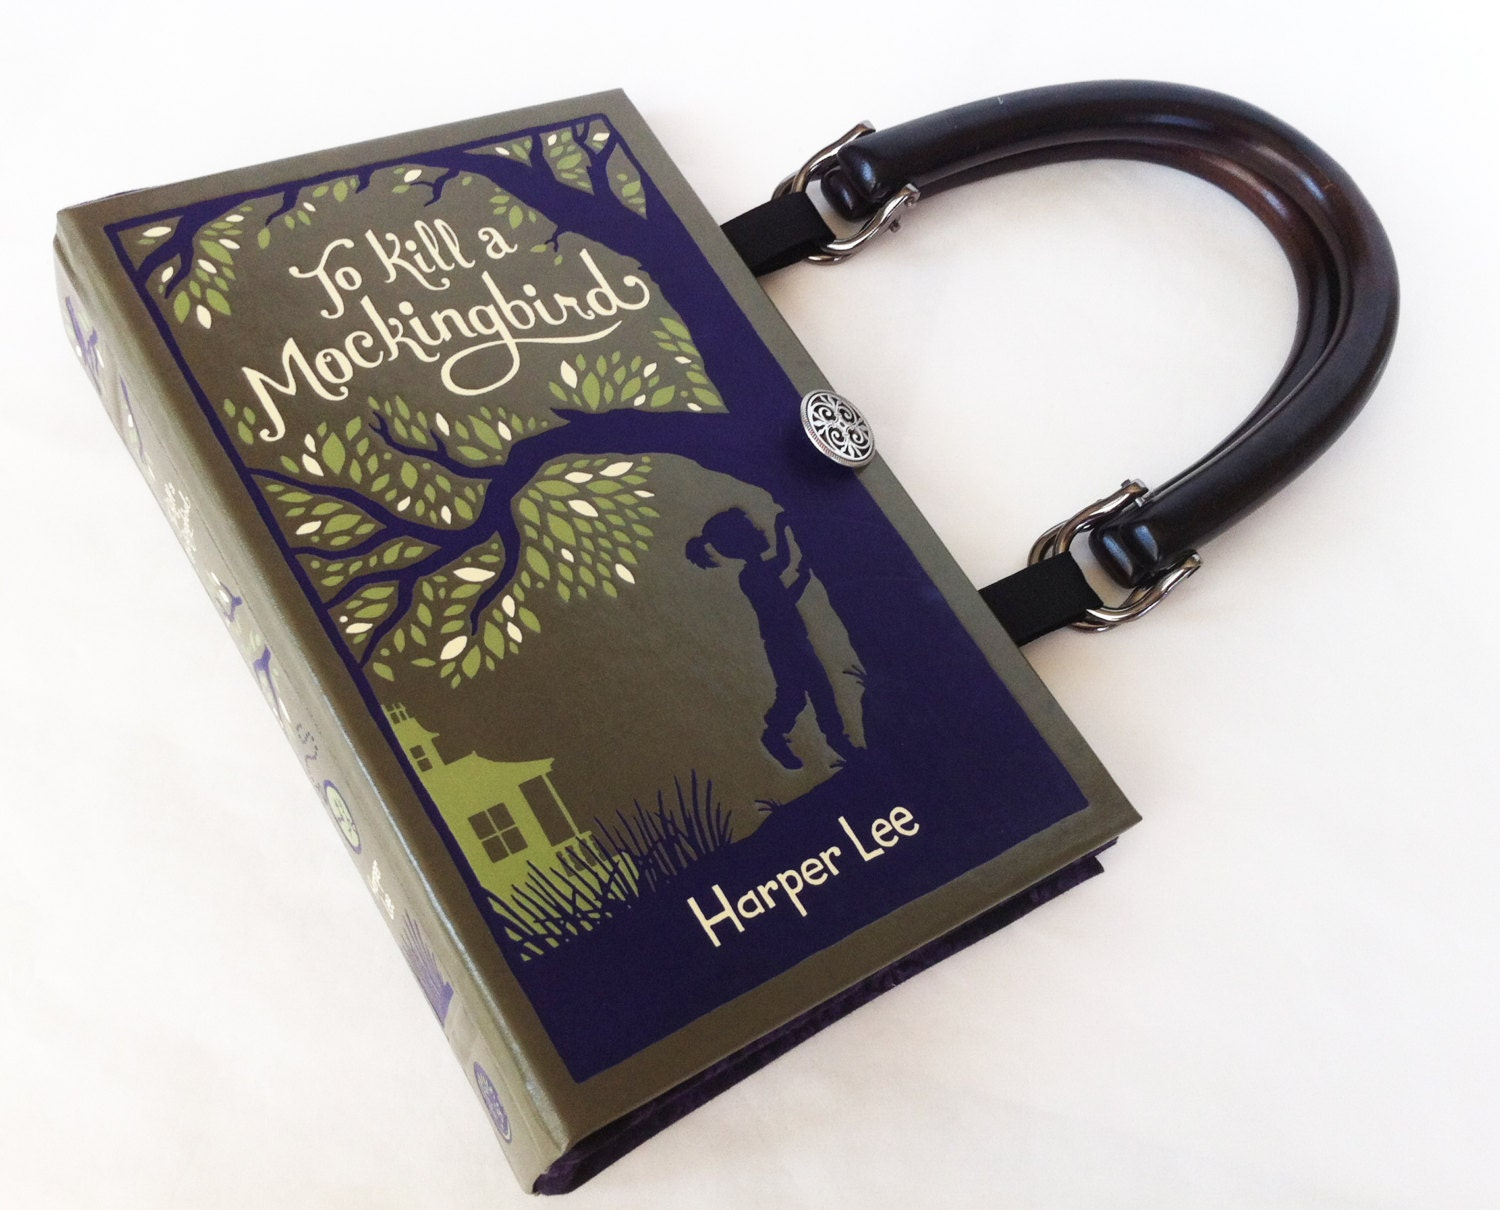 To Kill A Mockingbird Recycled Book Purse - Leather bound Book Purse - Banned Book Purse - Book Cover Handbag - Literary Gift